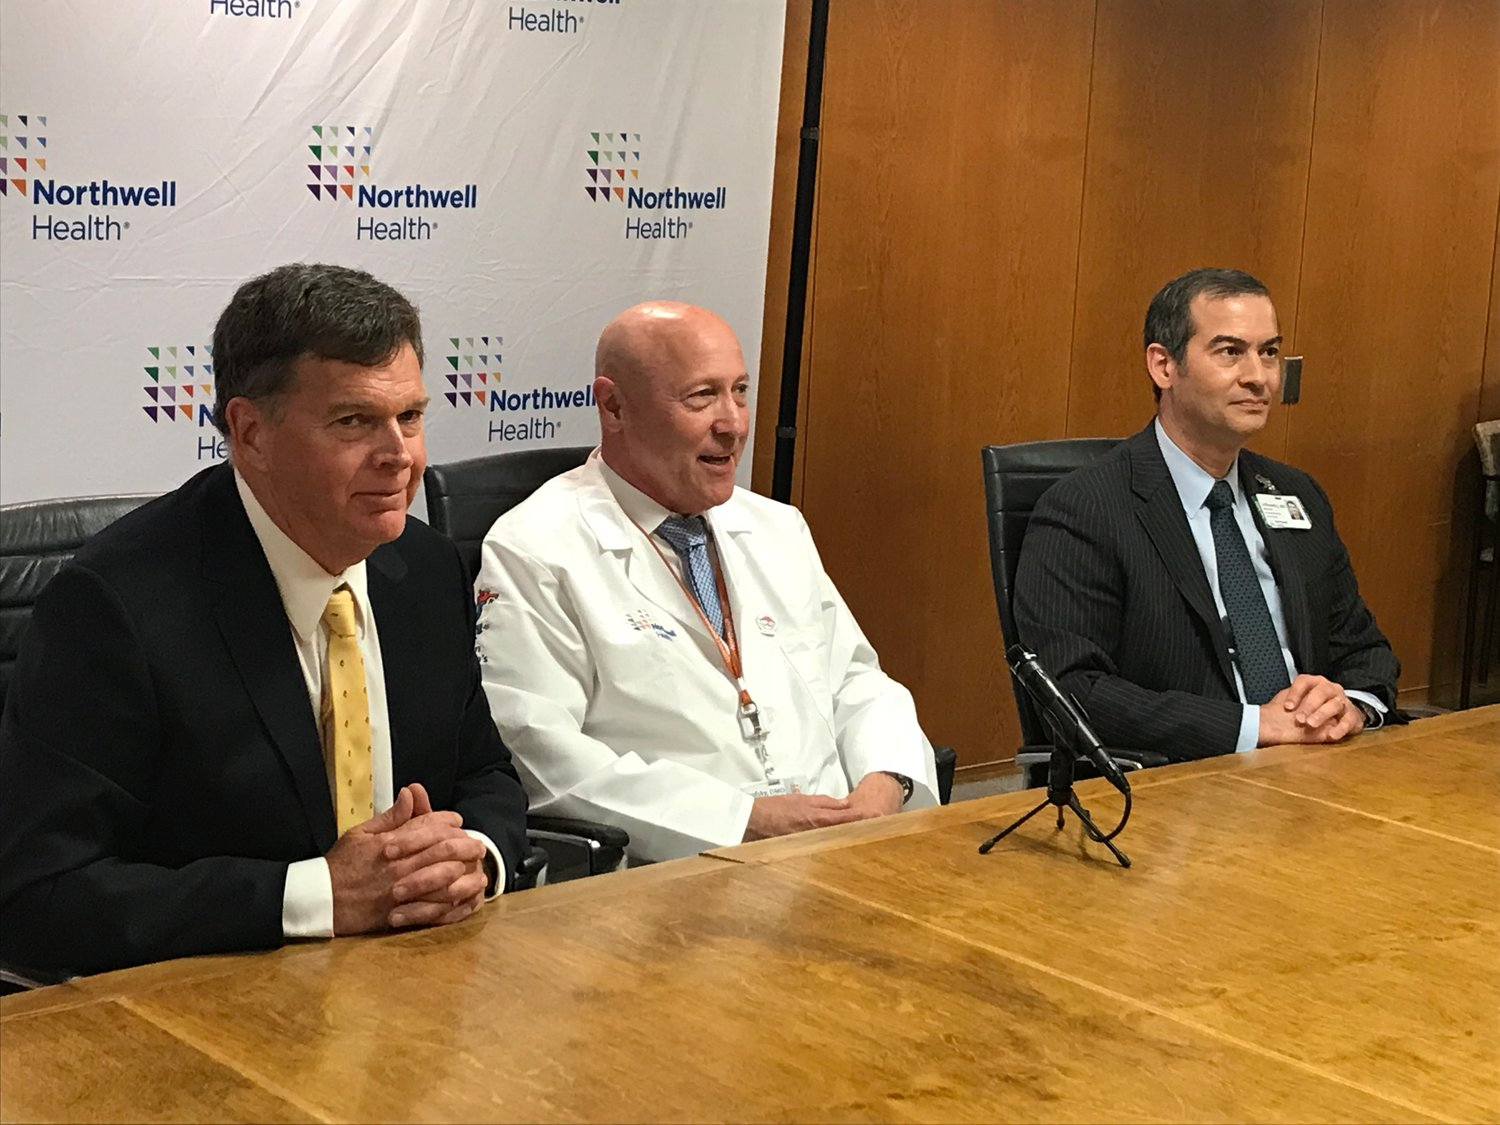 Dr. Joseph Brofsky, center, shared the harrowing story of his near-death experience after getting struck by a wave in the Domnican Republic in March, along with his friend, Jim Lawler, left, and Dr. Michael Lefkowitz, the surgeon who operated on him.